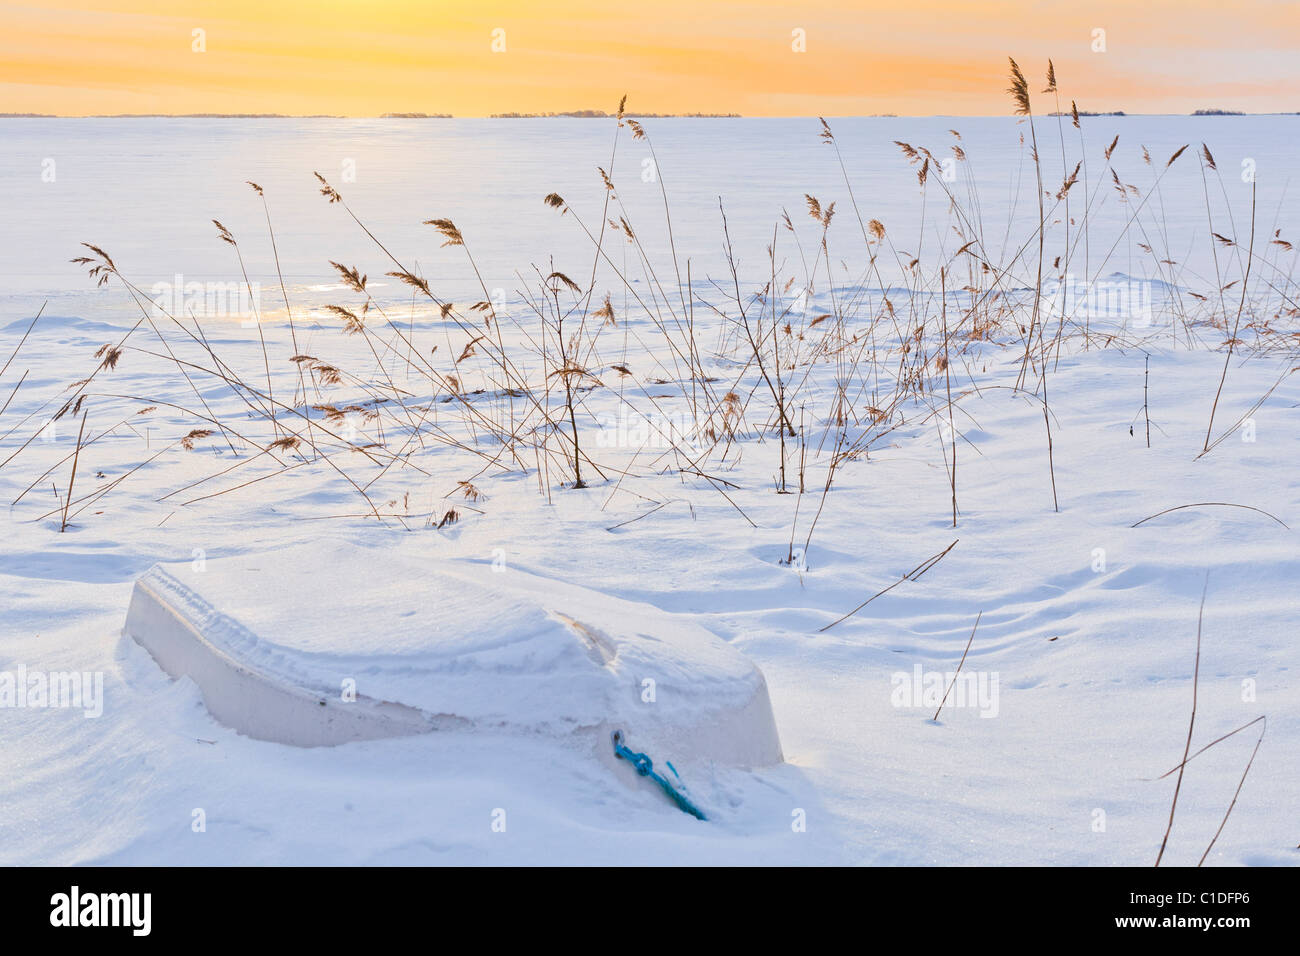 Winter afternoon in the 'Archipelago of Stockholm', Sweden. - Stock Image